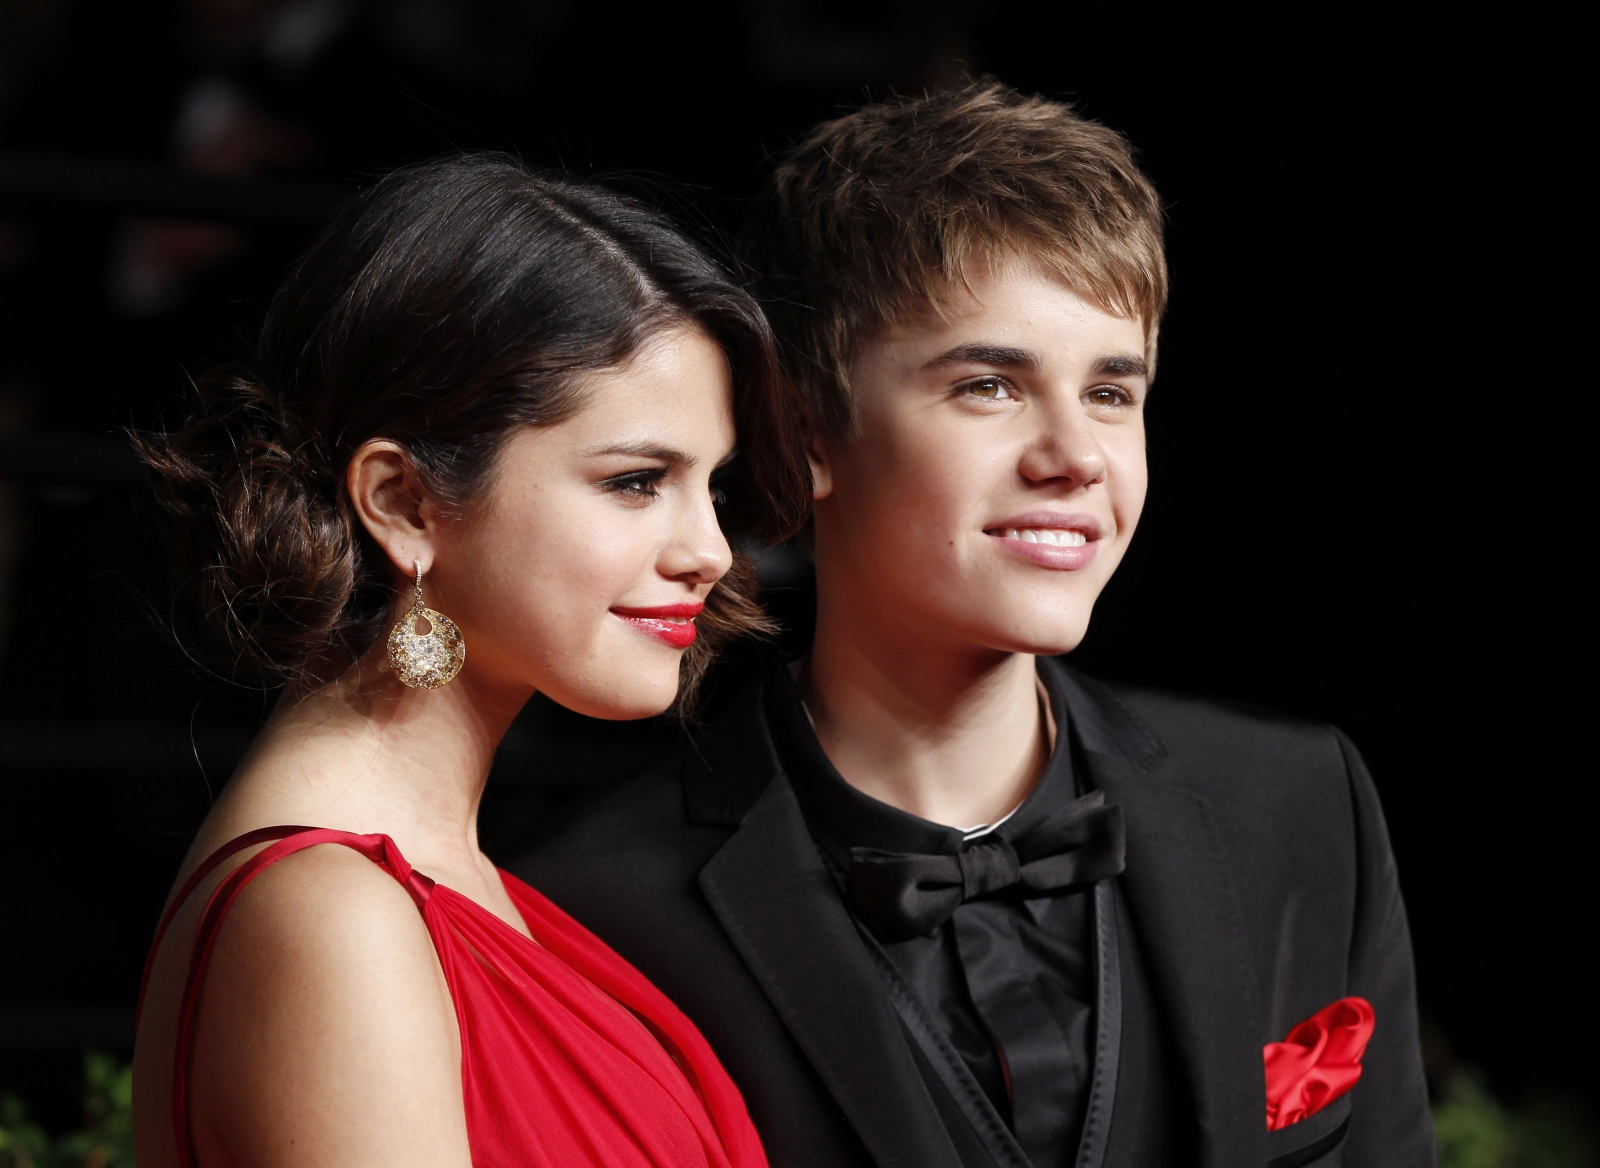 Justin Bieber and Selena Gomez holidaying in Canada